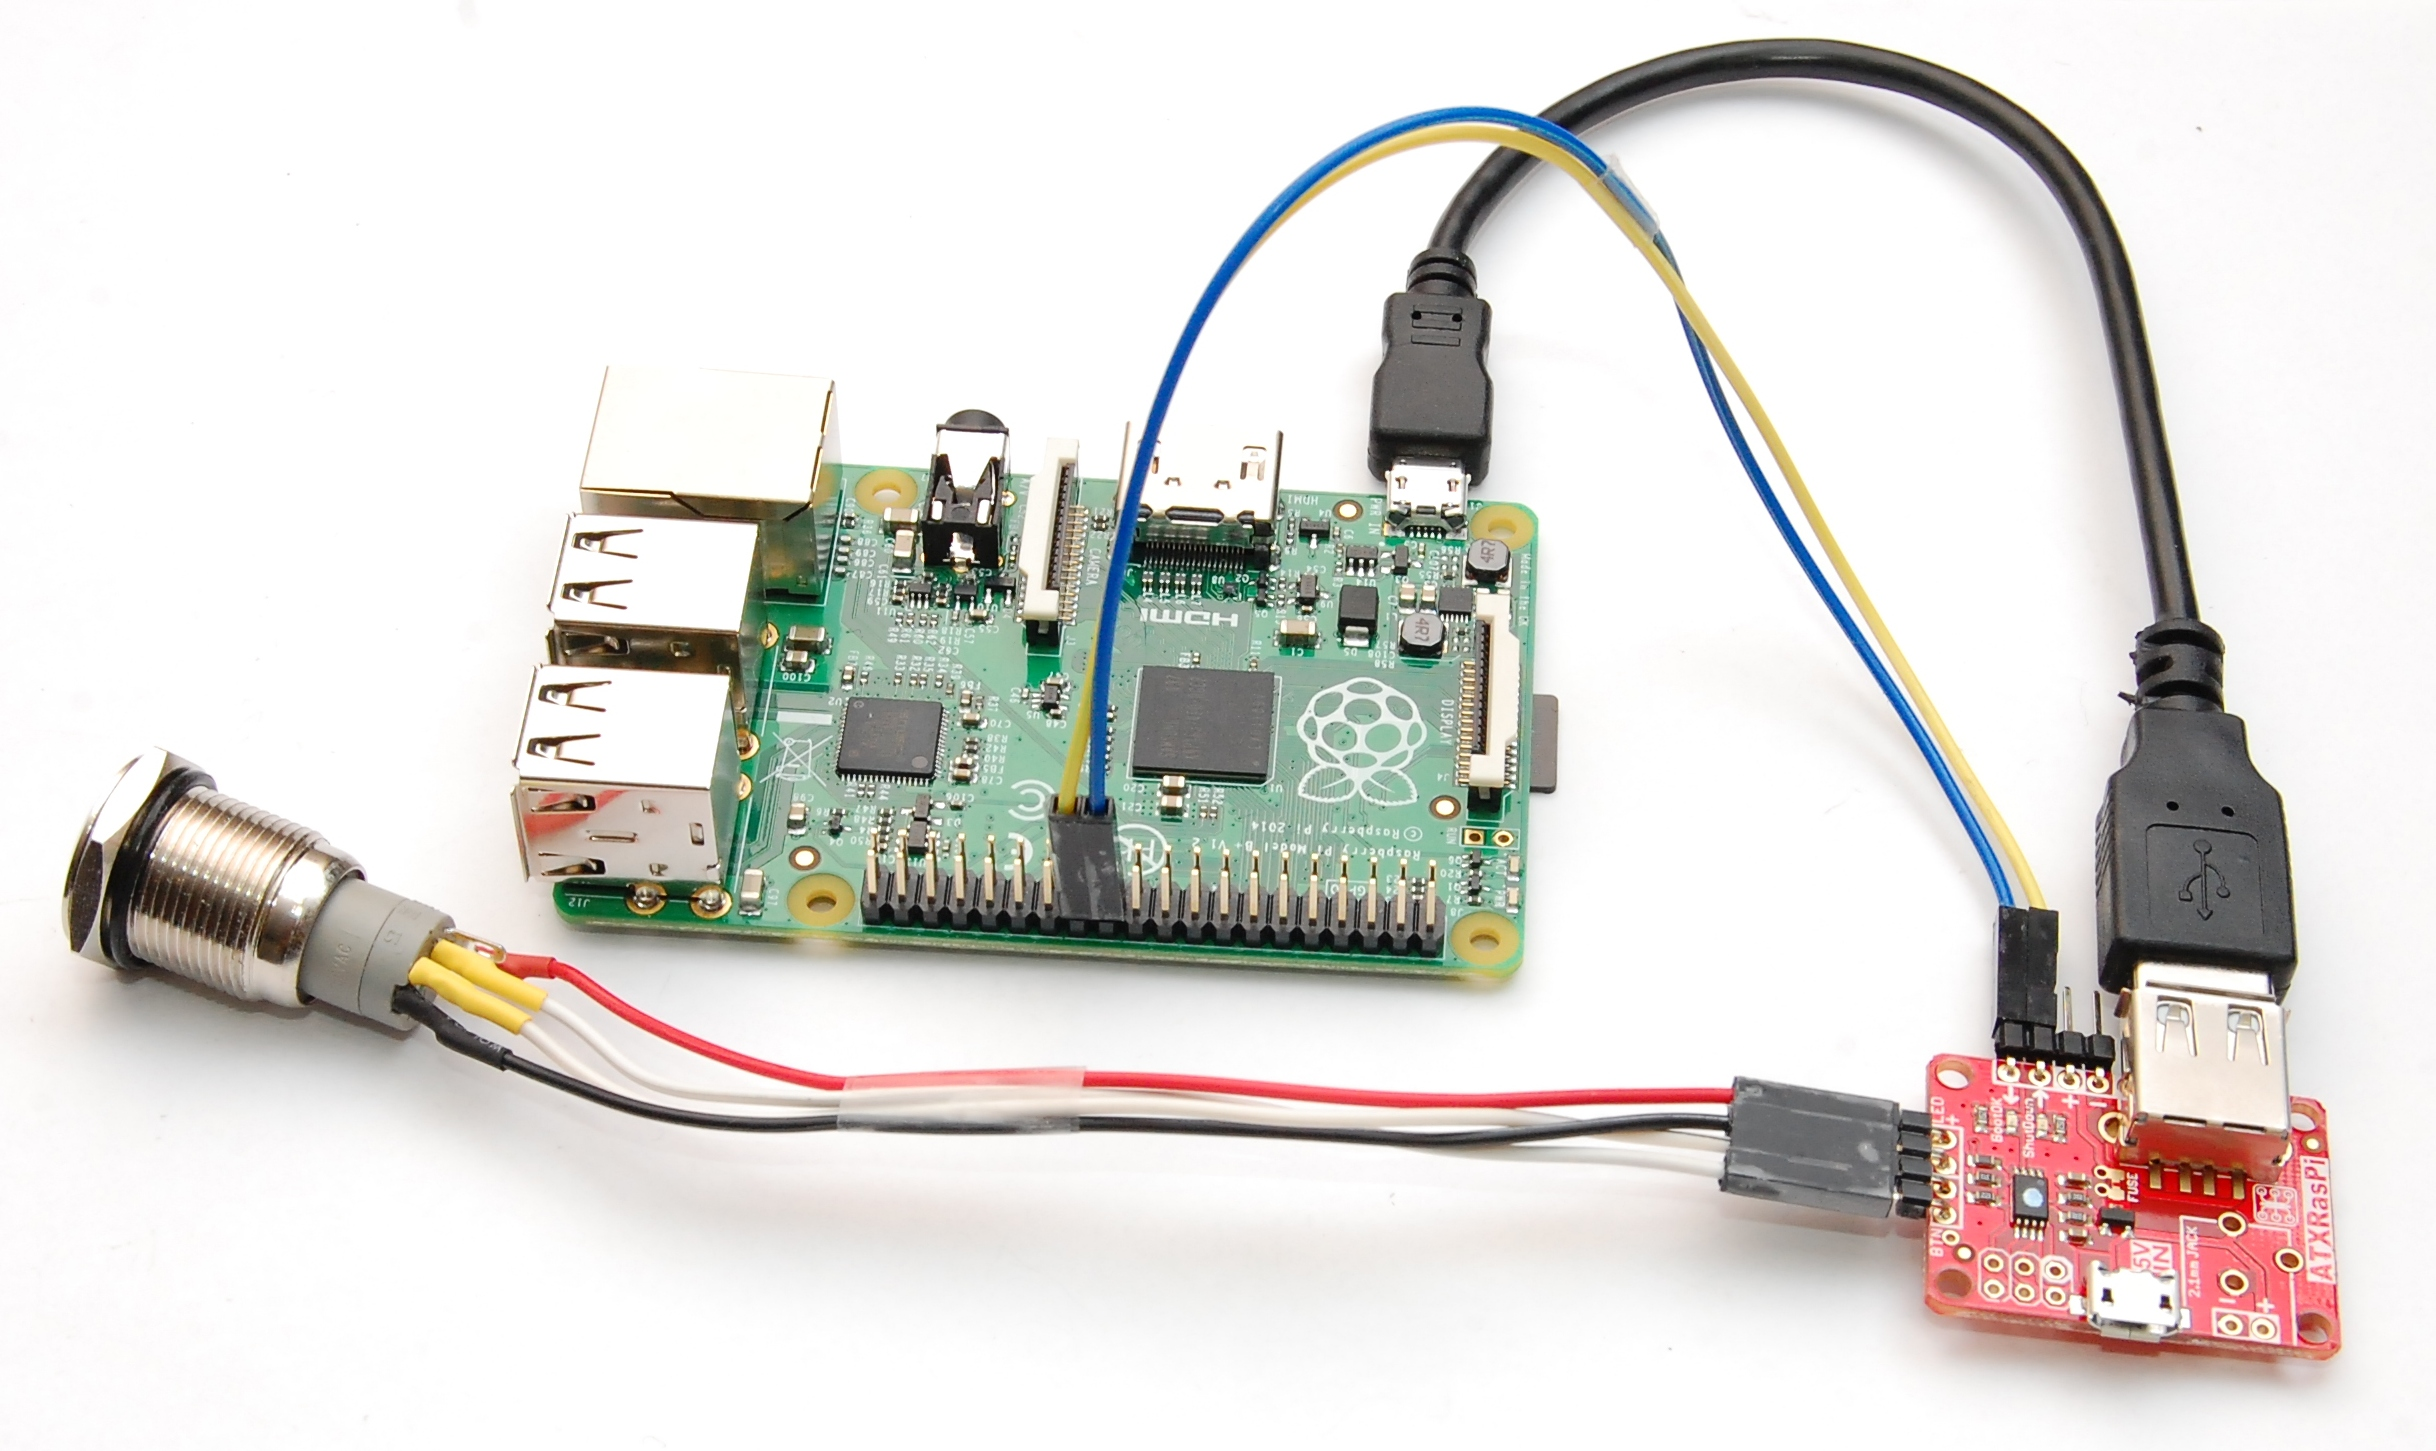 Atxraspi Lowpowerlab Pi On Off Power Controller Up Your Raspberry With Latching An Error Occurred